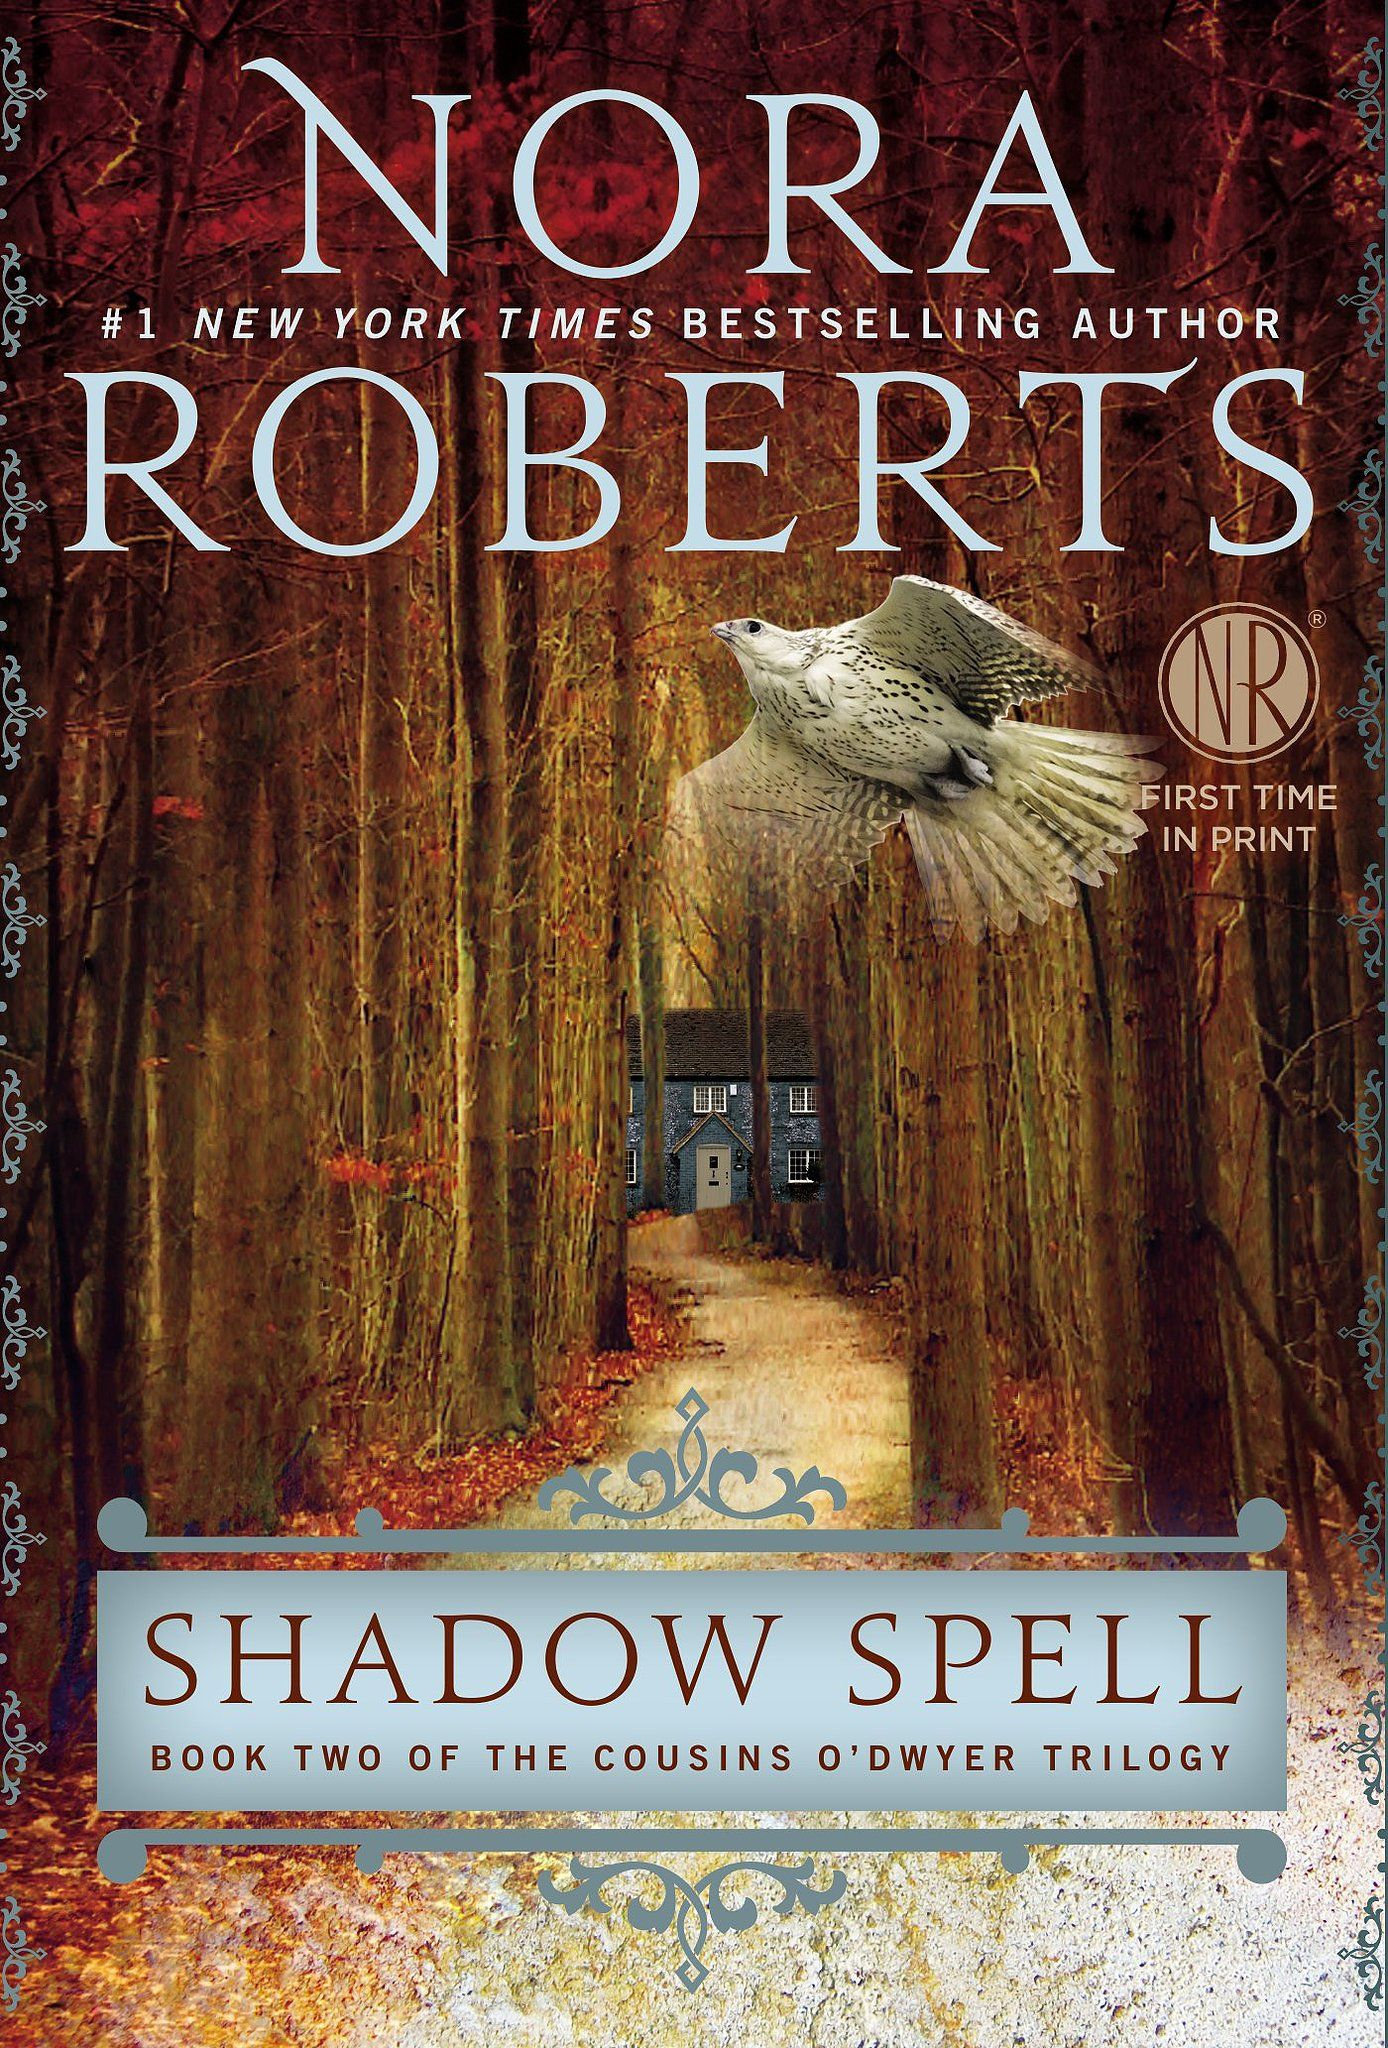 Nora Roberts's romantic suspense novel Shadow Spell is the second book in The Cousins O'Dwyer Trilogy after Dark Witch. Set in Ireland, it's a haunting story of family, home, and love.